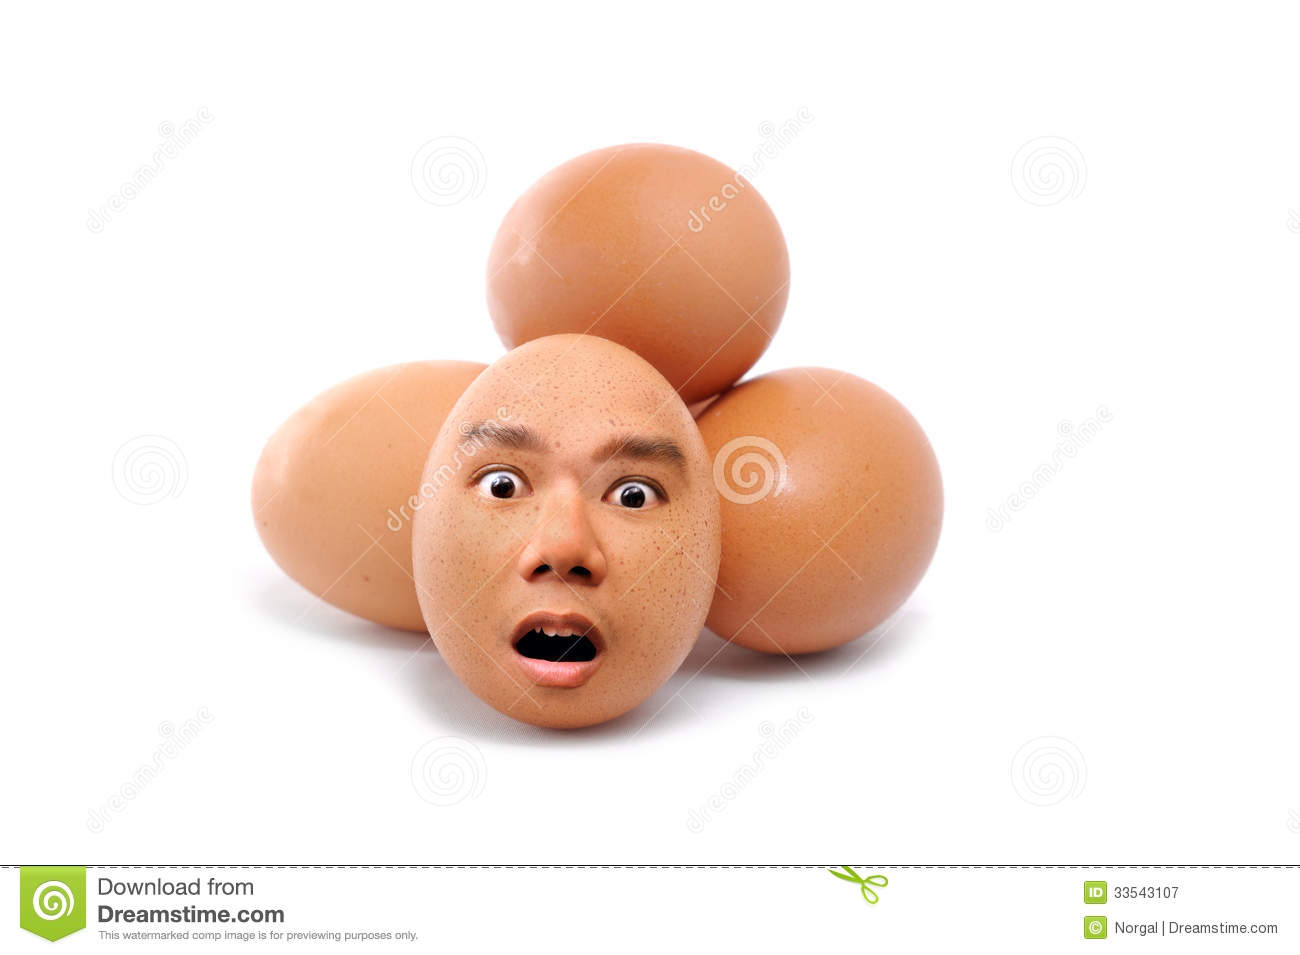 Human Face Egg Royalty Free Stock Photography - Image: 33543107